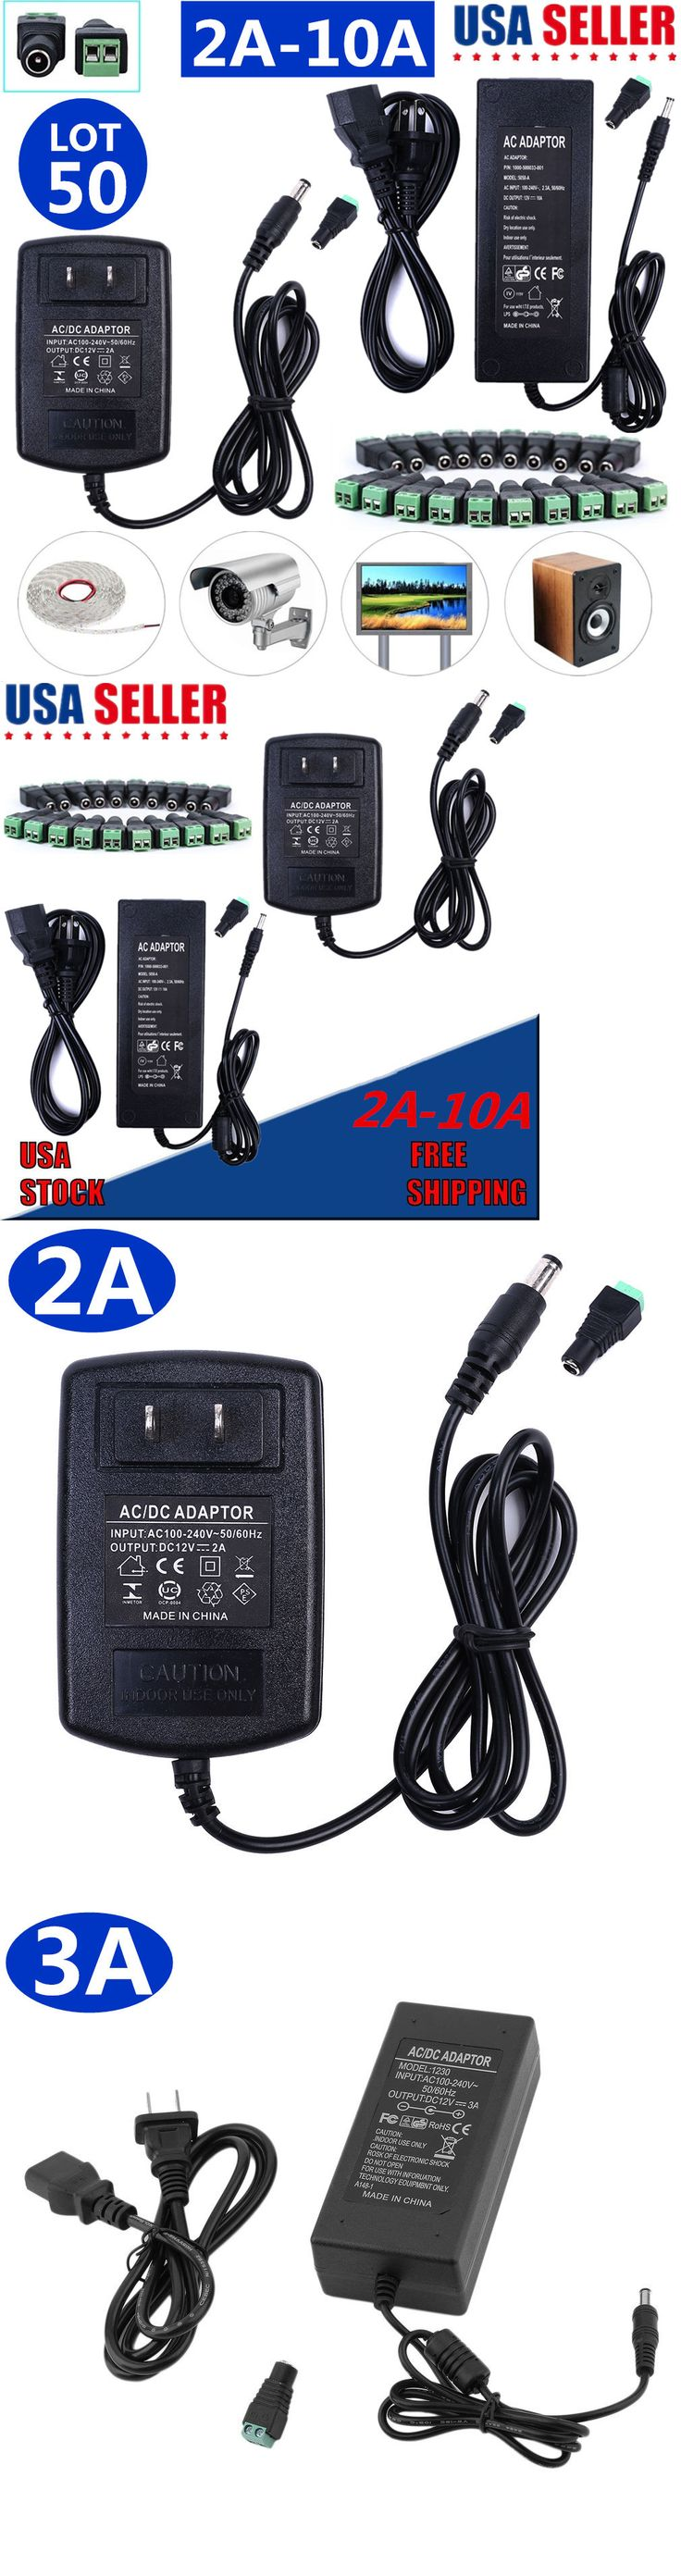 Lighting Parts and Accessories 20705: Ac Dc Power Supply Adapter Transformer 12V 2 3 5 6 8 10A For 5050 3528 Led Strip -> BUY IT NOW ONLY: $439 on eBay!